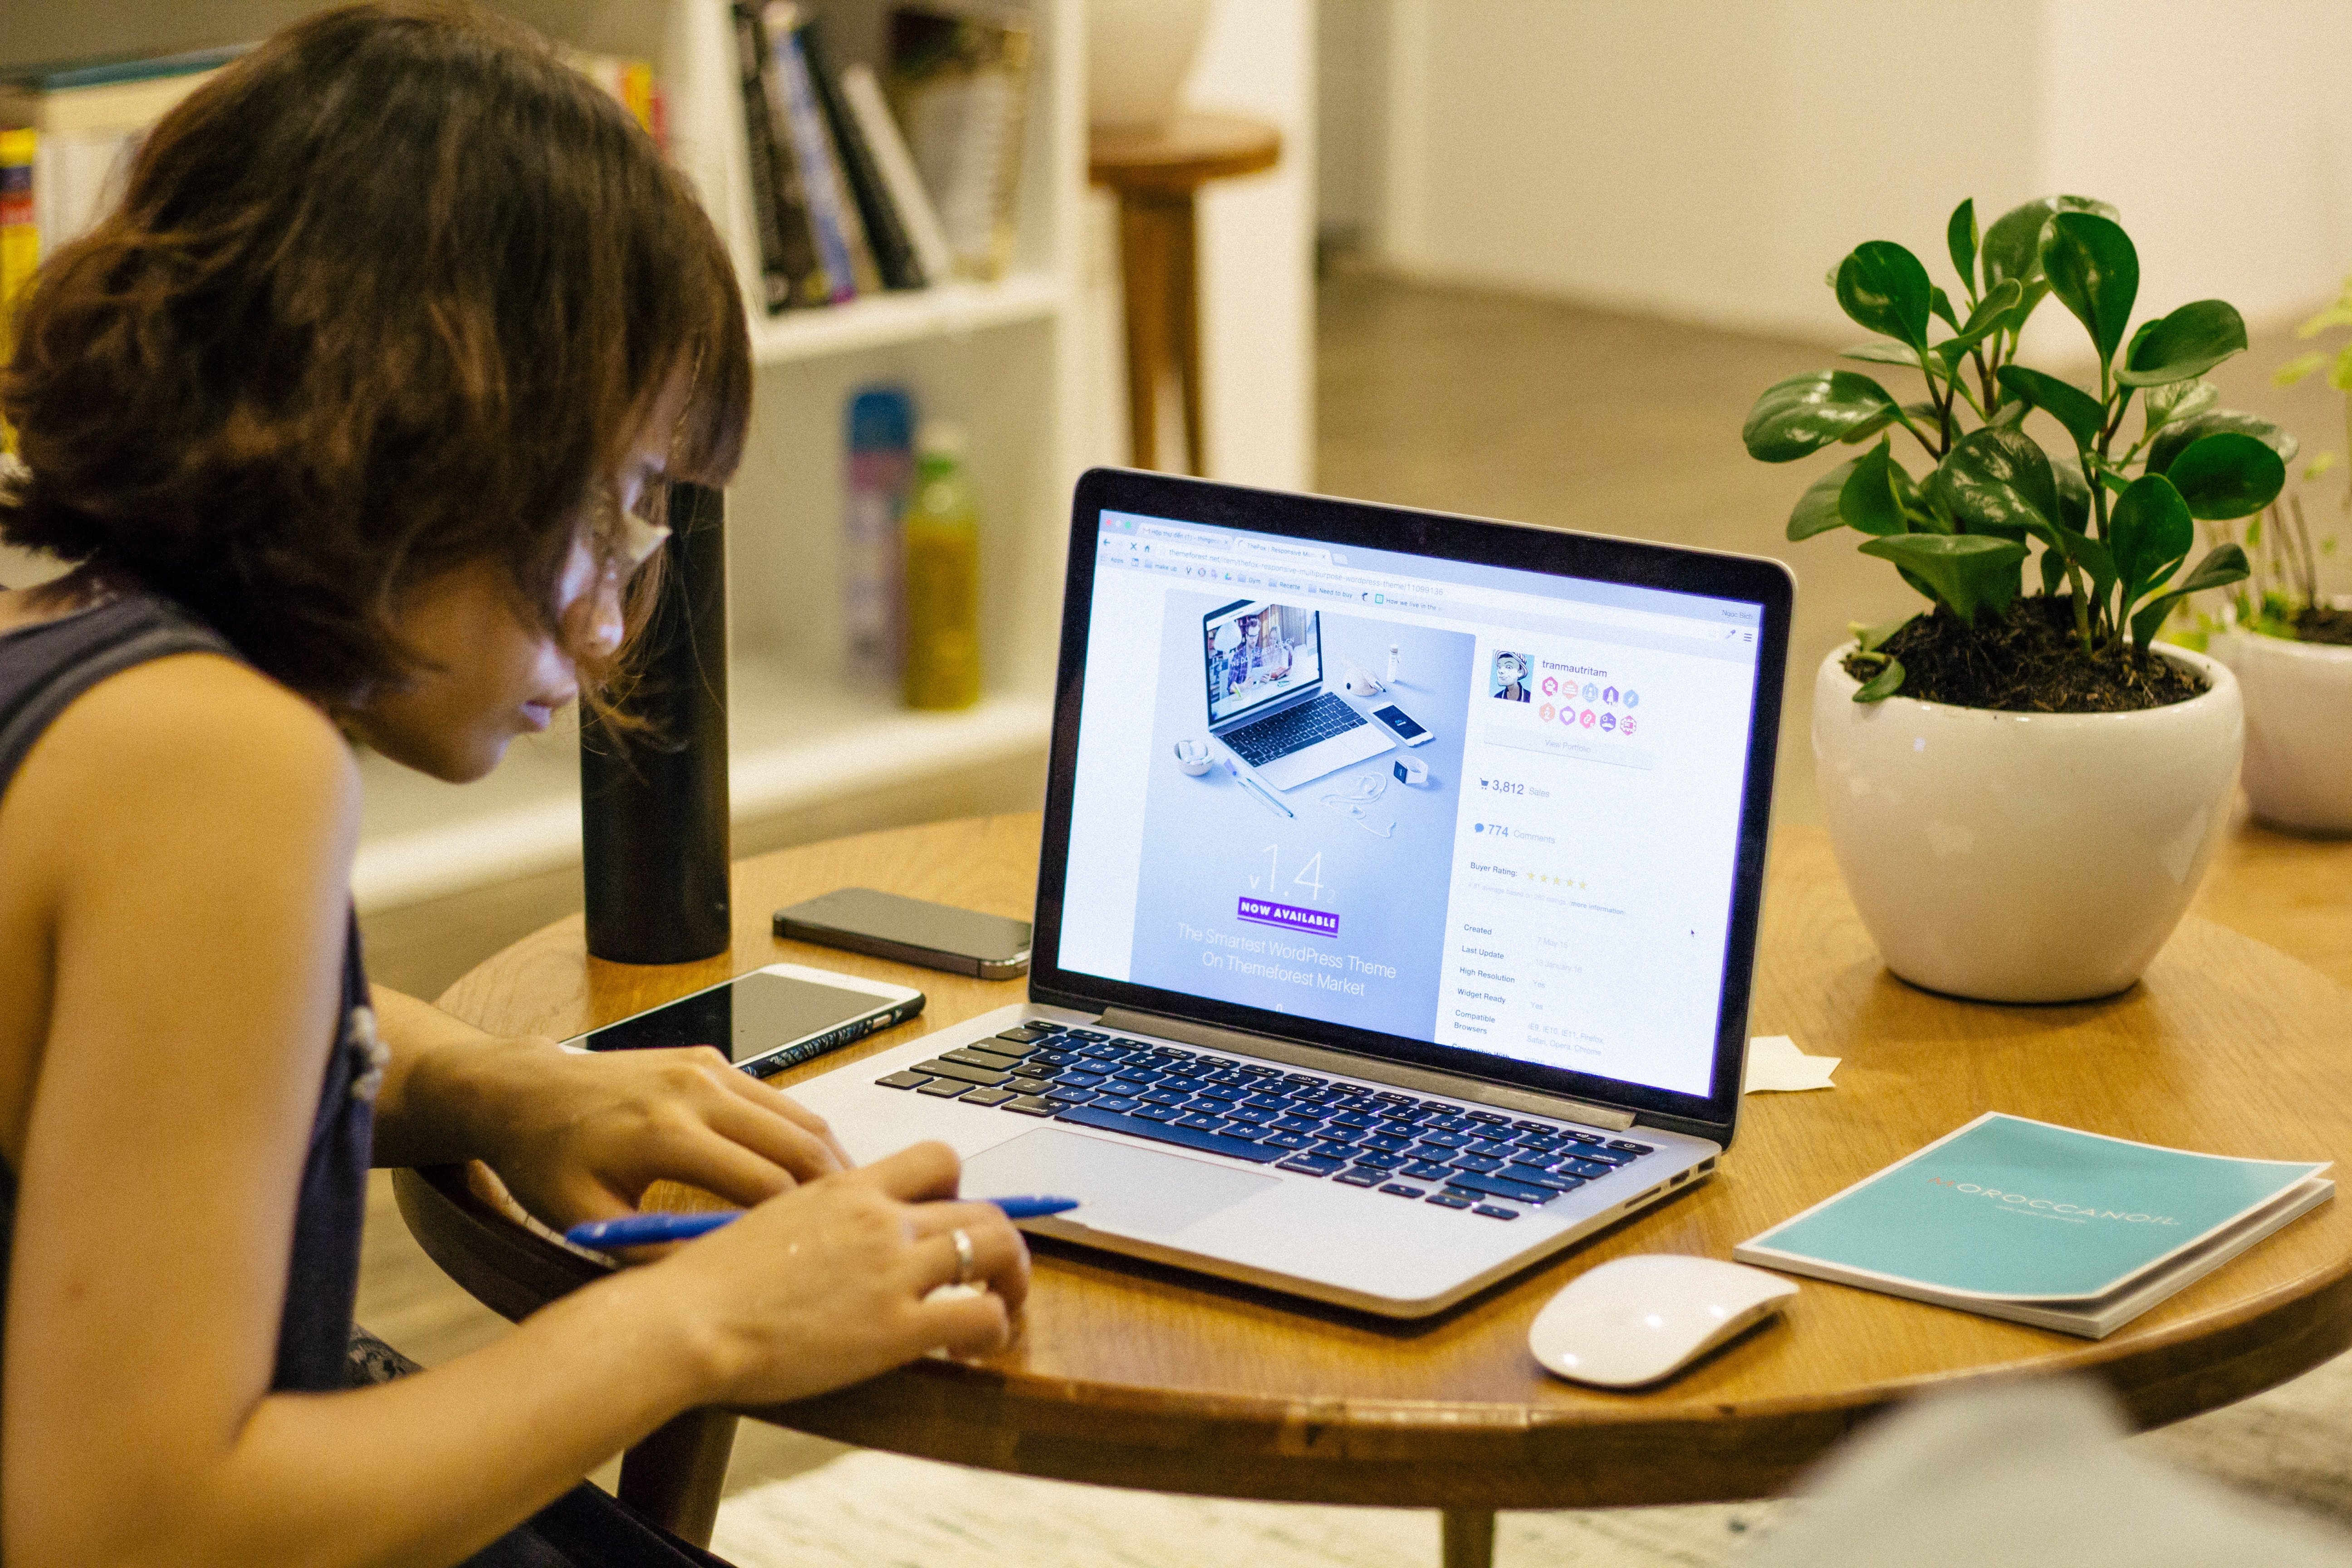 business essays google online internet Thanks to the internet, virtually anything you desire can be delivered to your door in a matter of days you can even trade stocks or file taxes online but as much as our personal lives have changed, the business world has revolutionized almost beyond recognition in the past few decades.